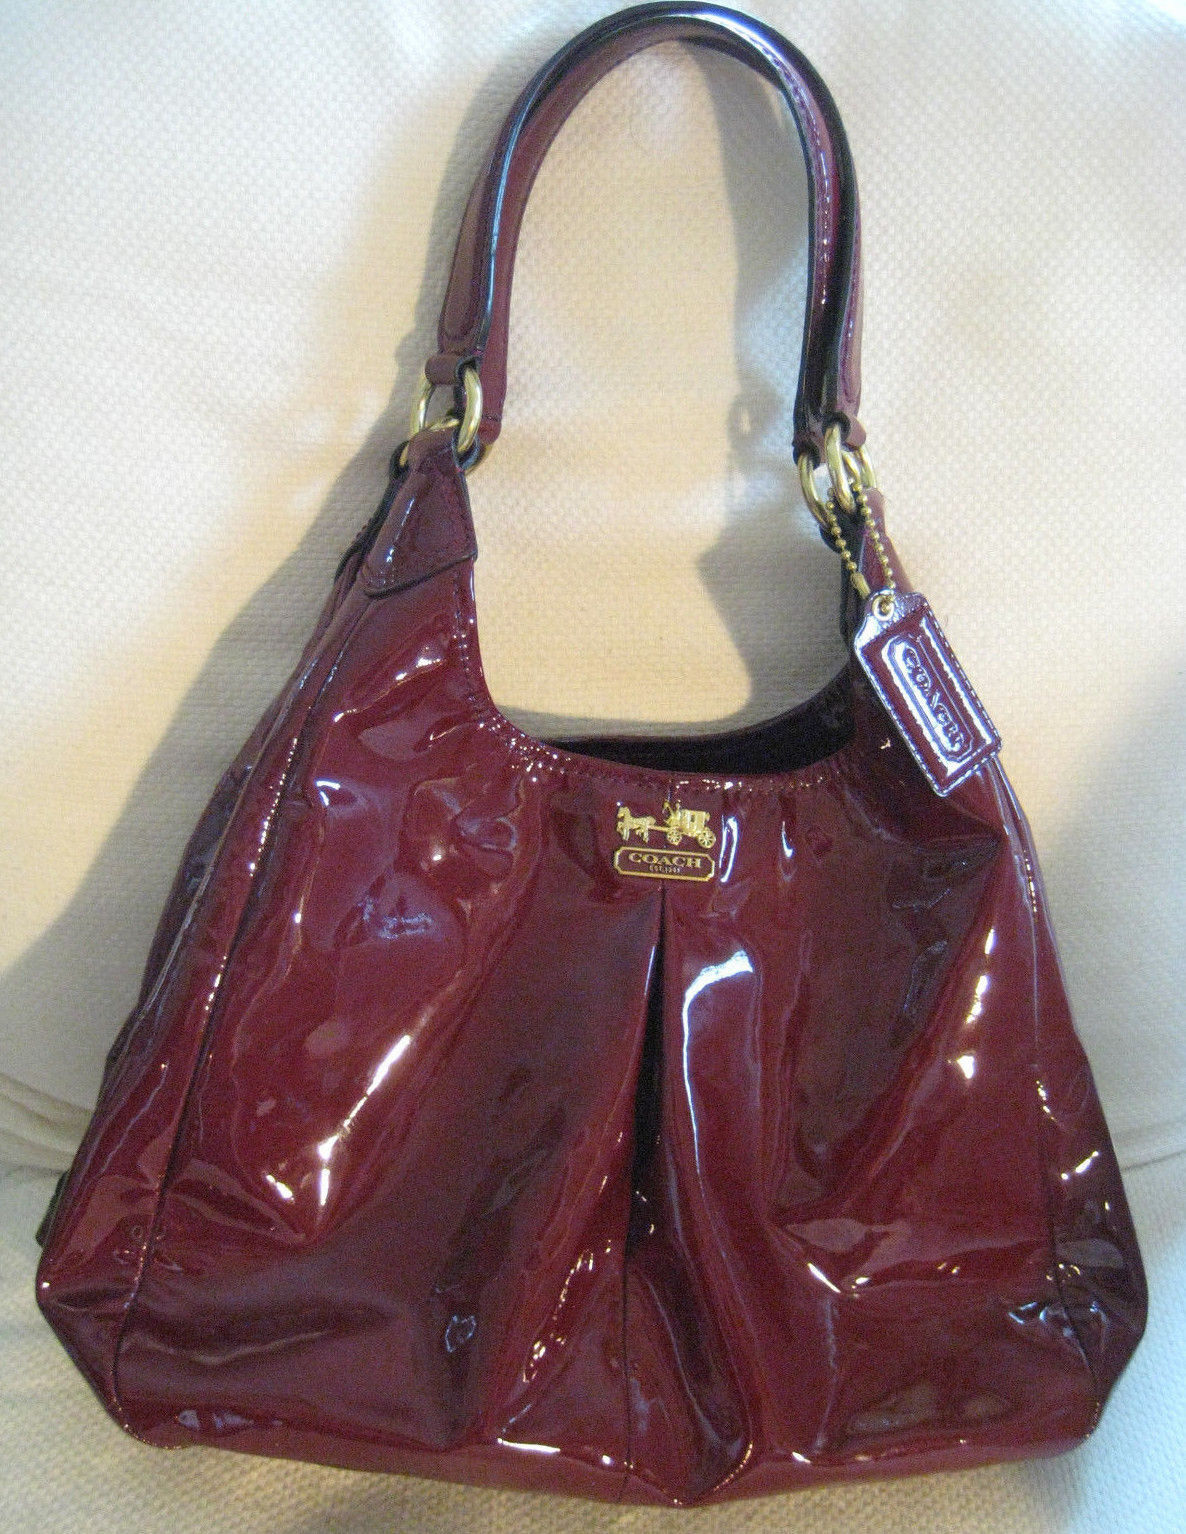 1999645d4c 57. 57. Previous. AUTH COACH Red Patent Leather Handbag 21238 Madison ...